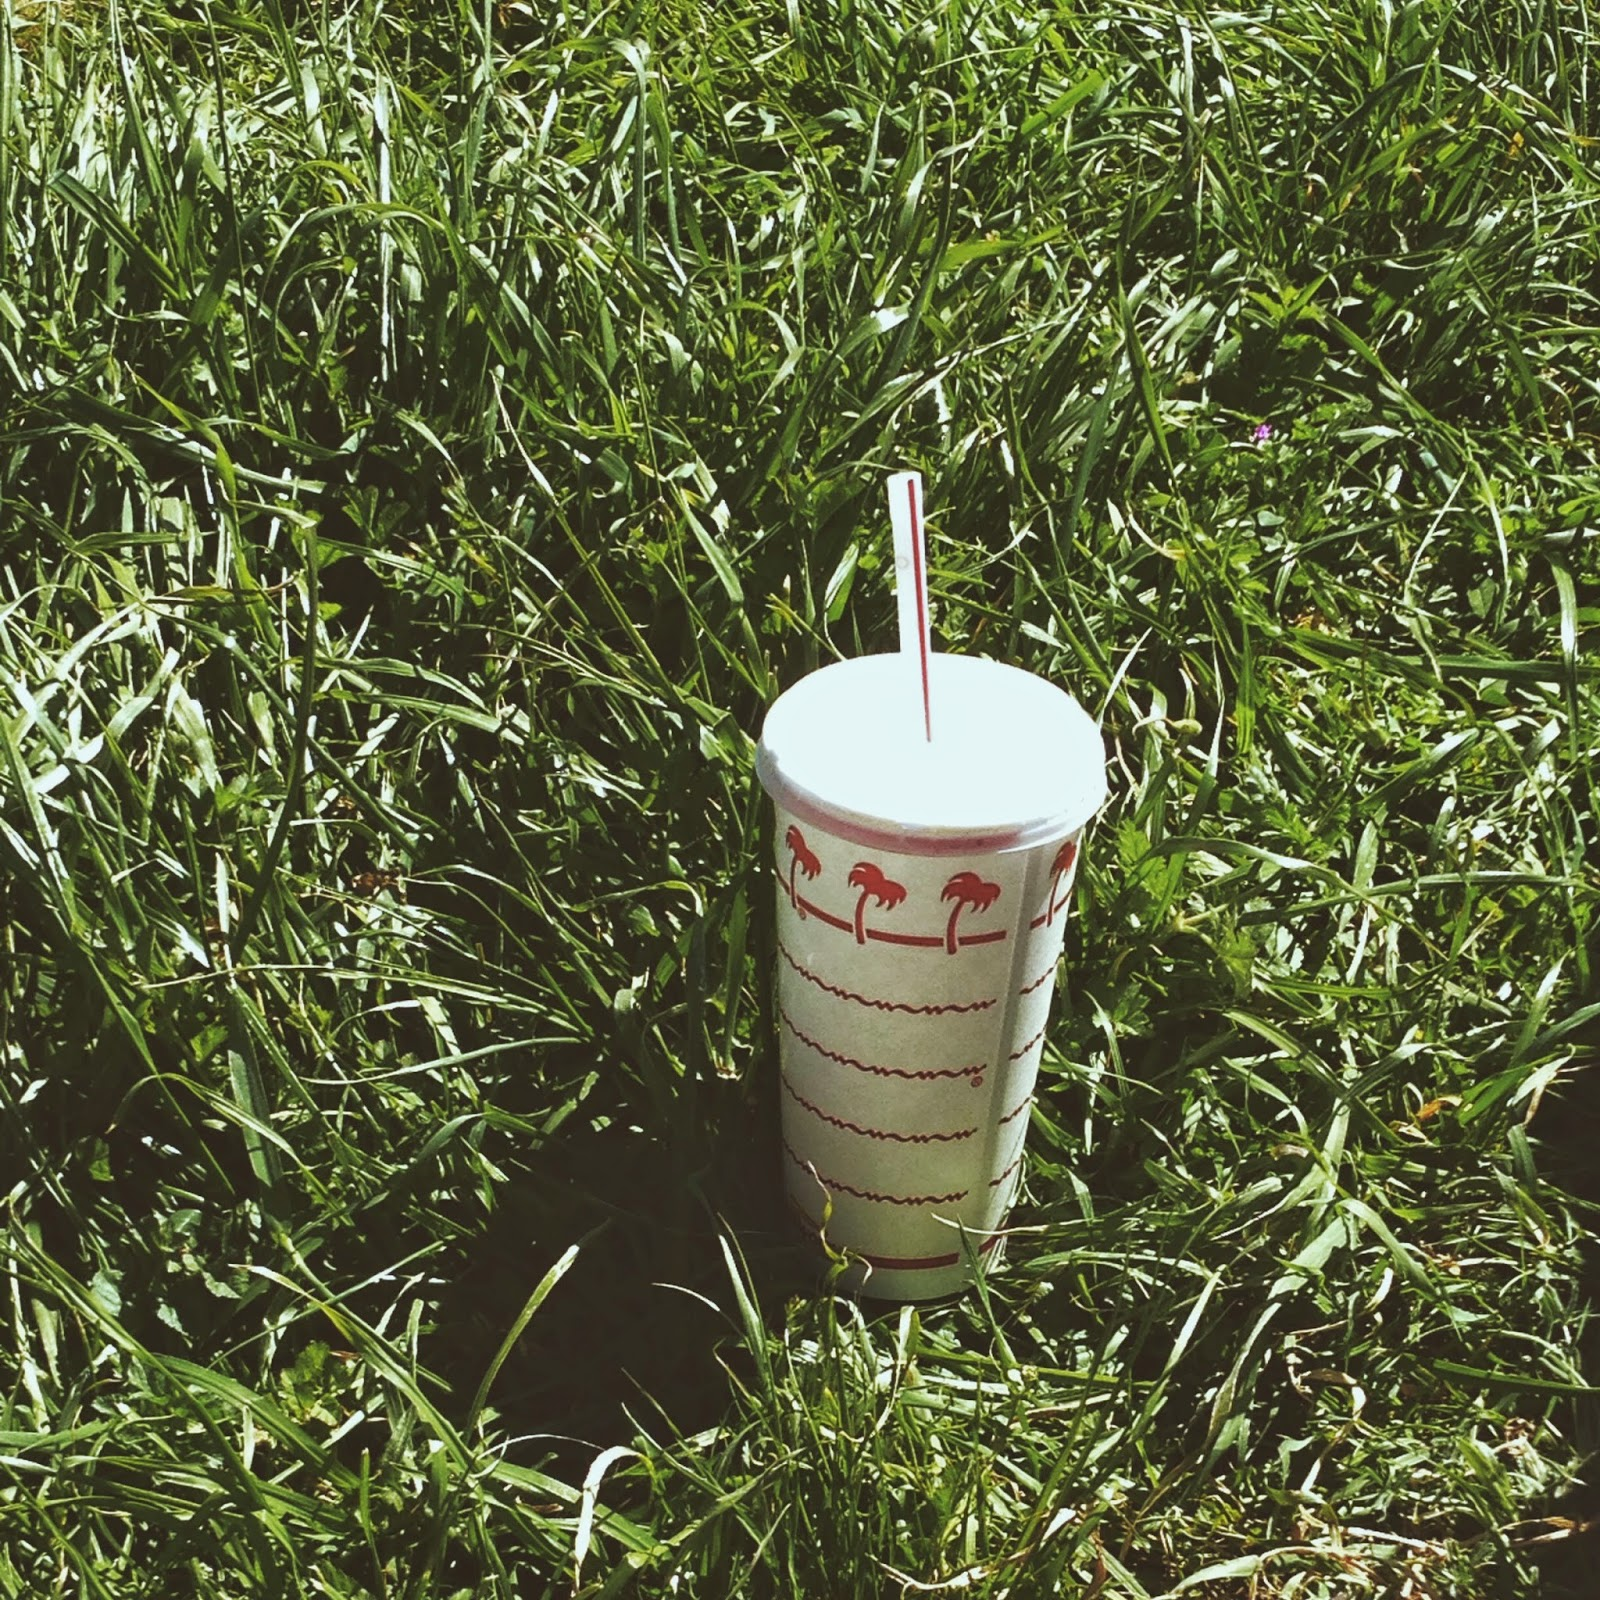 in-n-out cup in grass